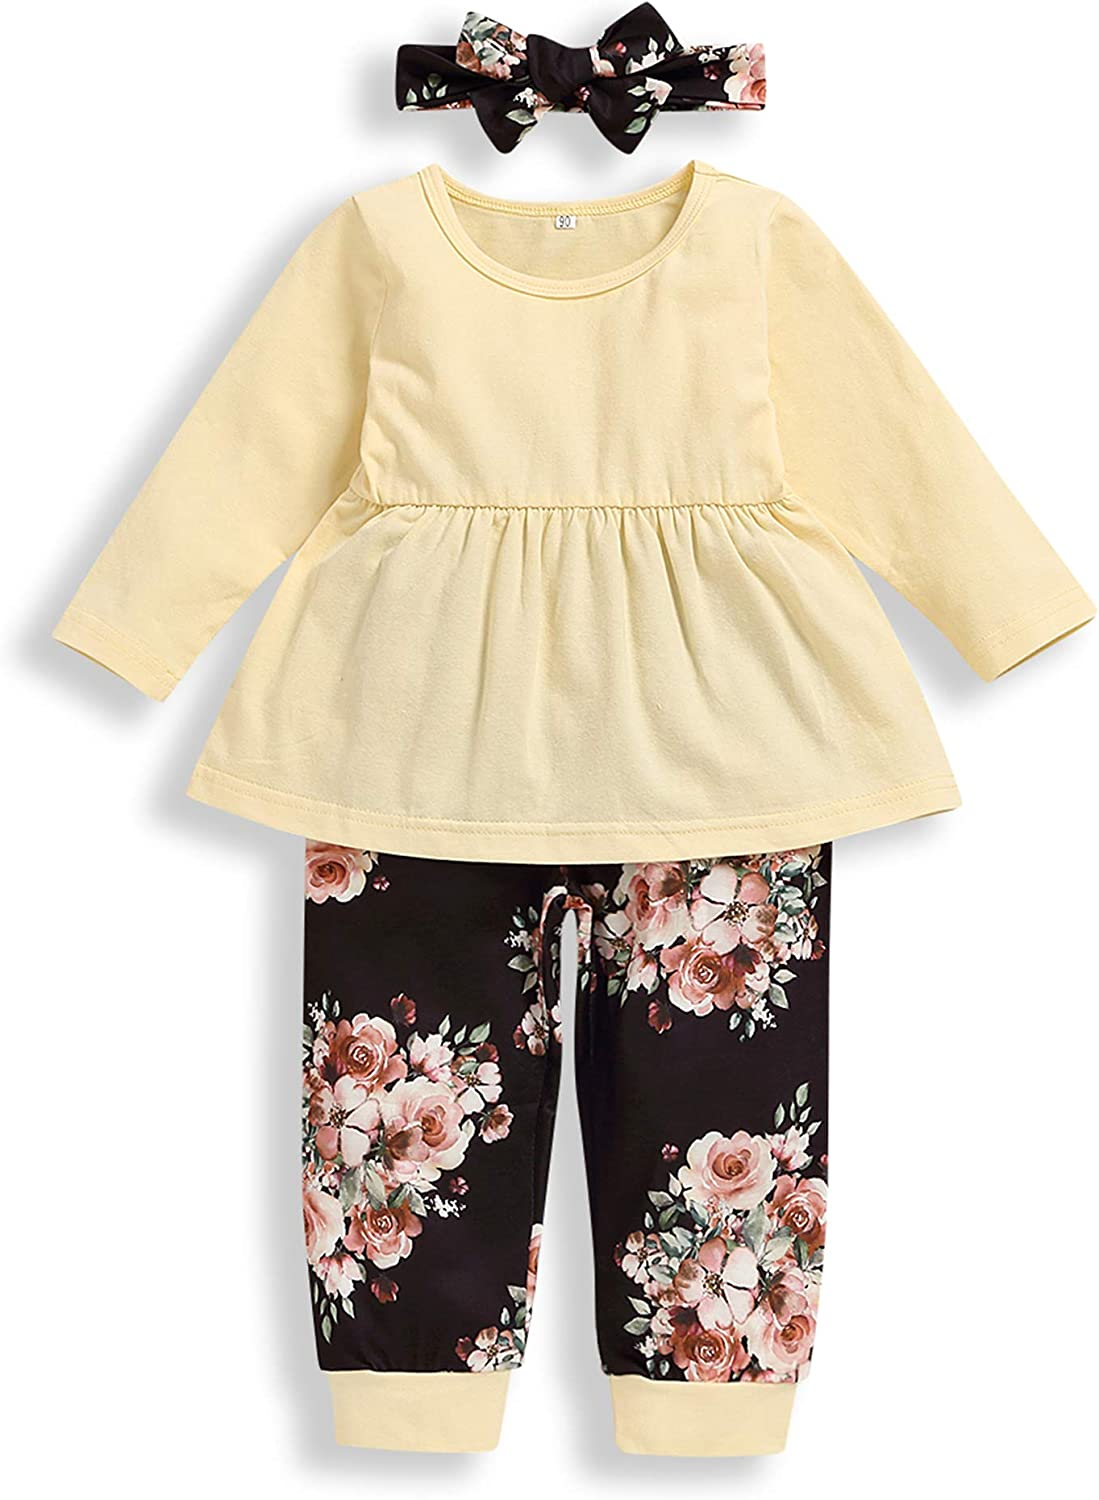 Toddler Baby Girl Clothes Solid Color Ruffle Tops Floral Pants with Headband Outfit Sets Light Yellow